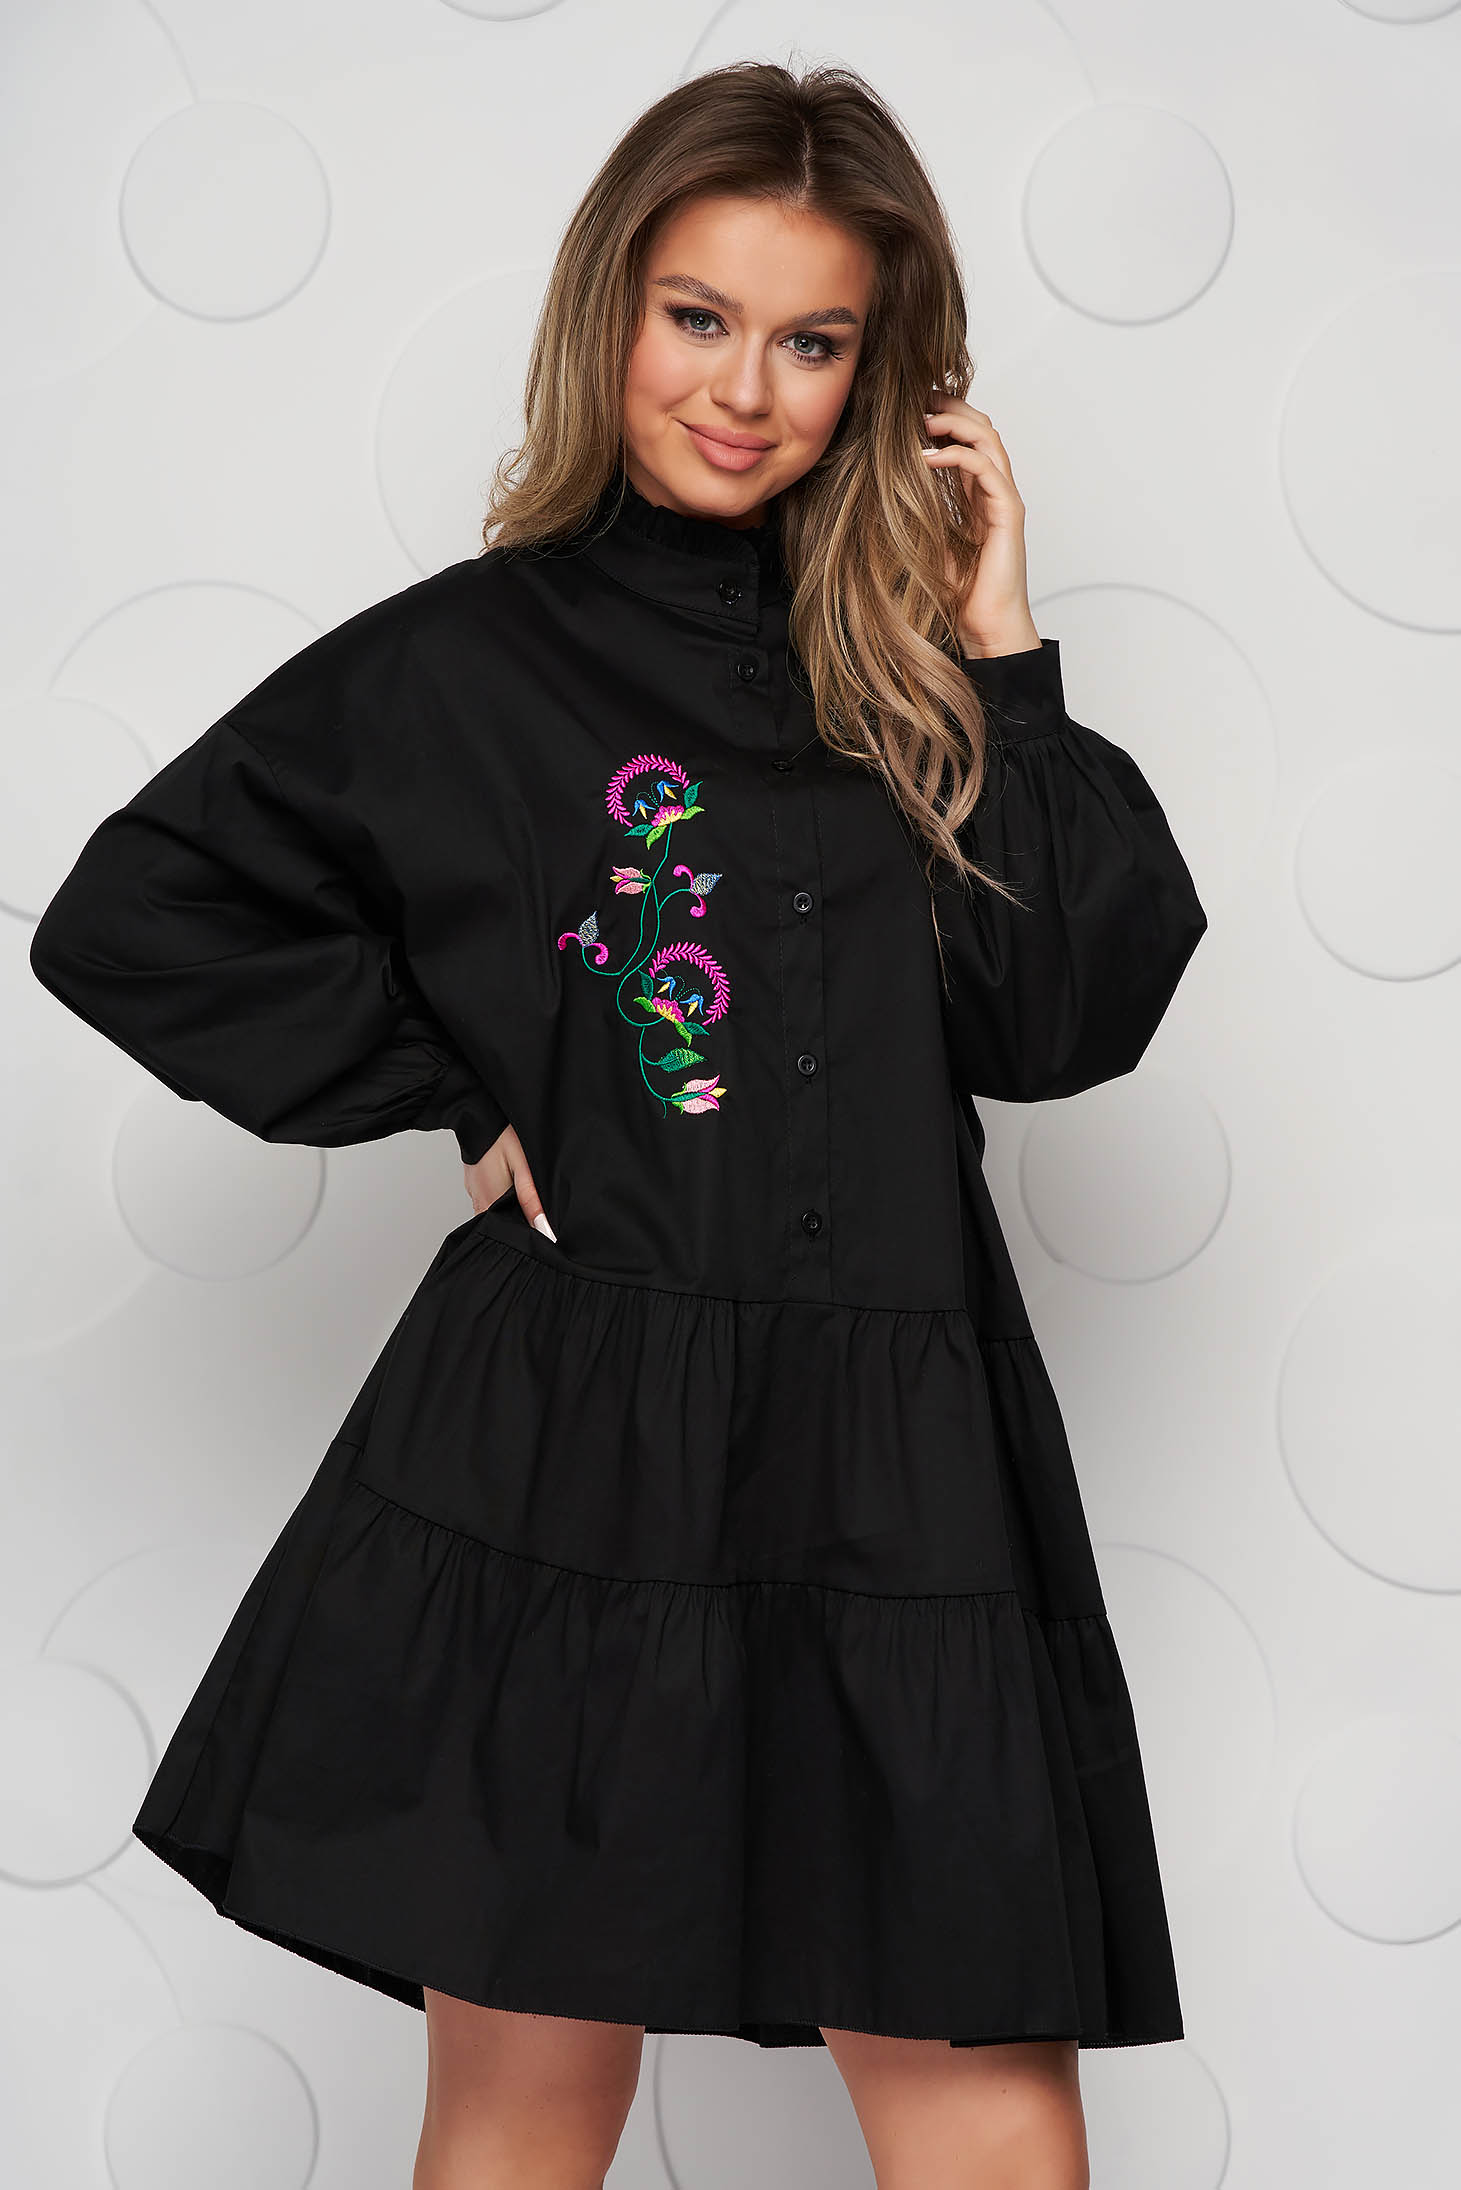 Black dress cotton loose fit with ruffle details embroidered